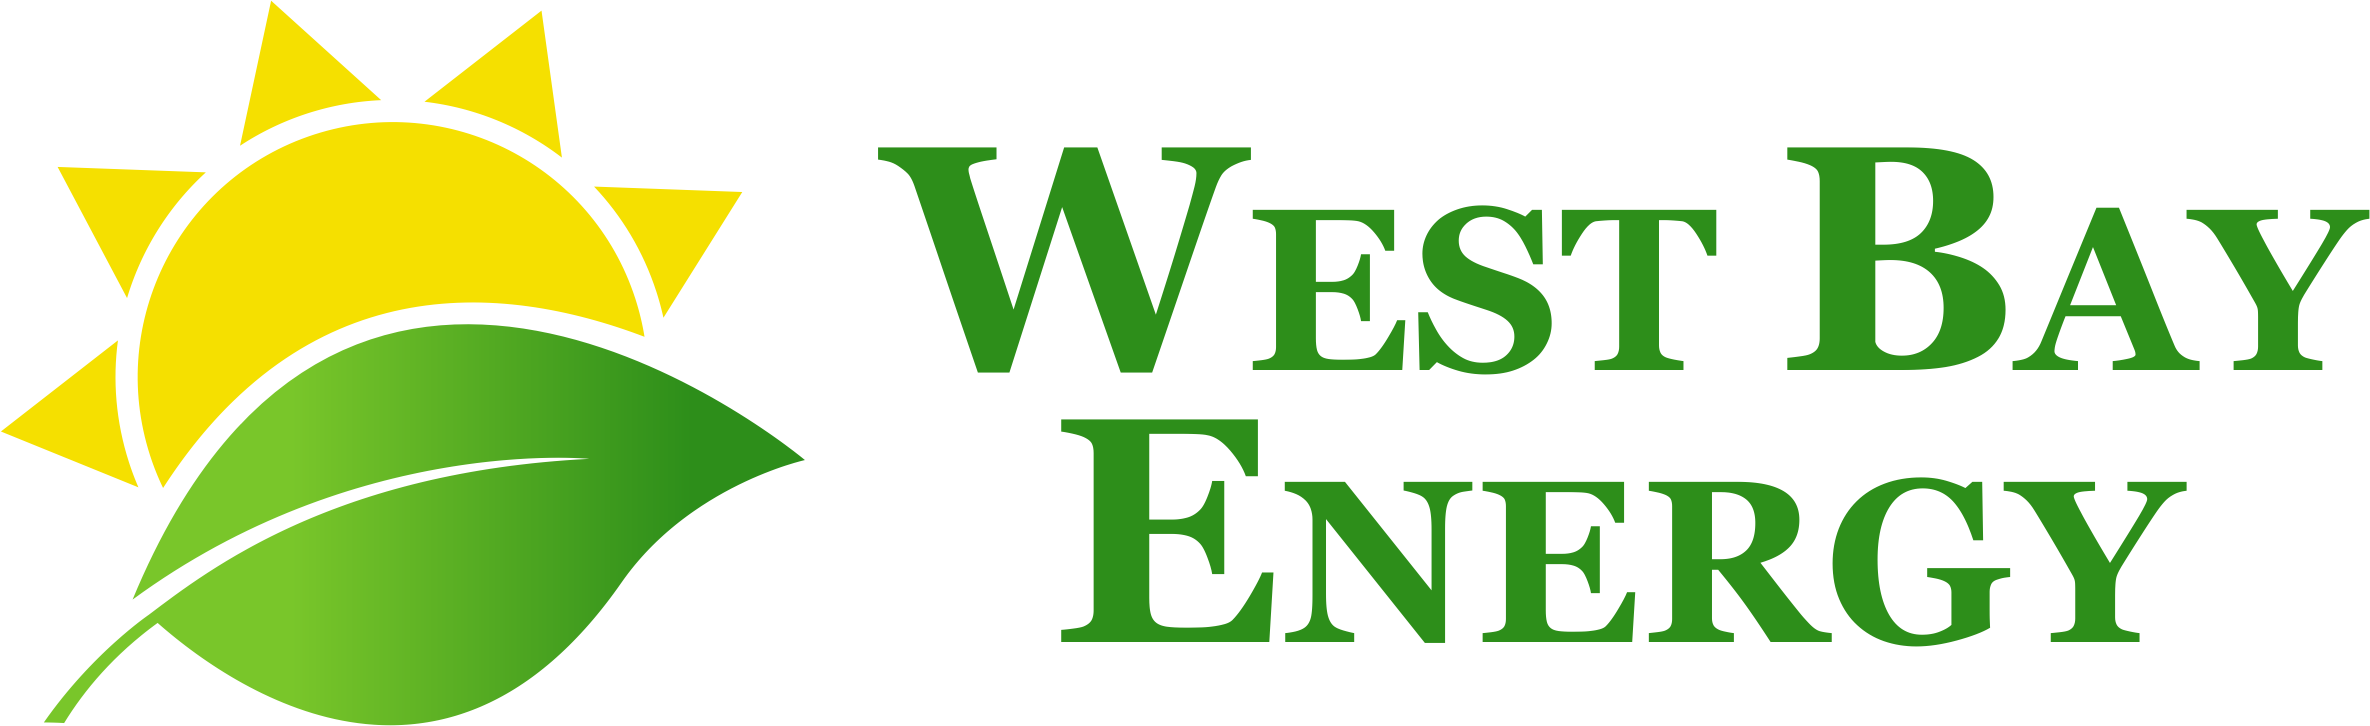 West Bay Energy logo